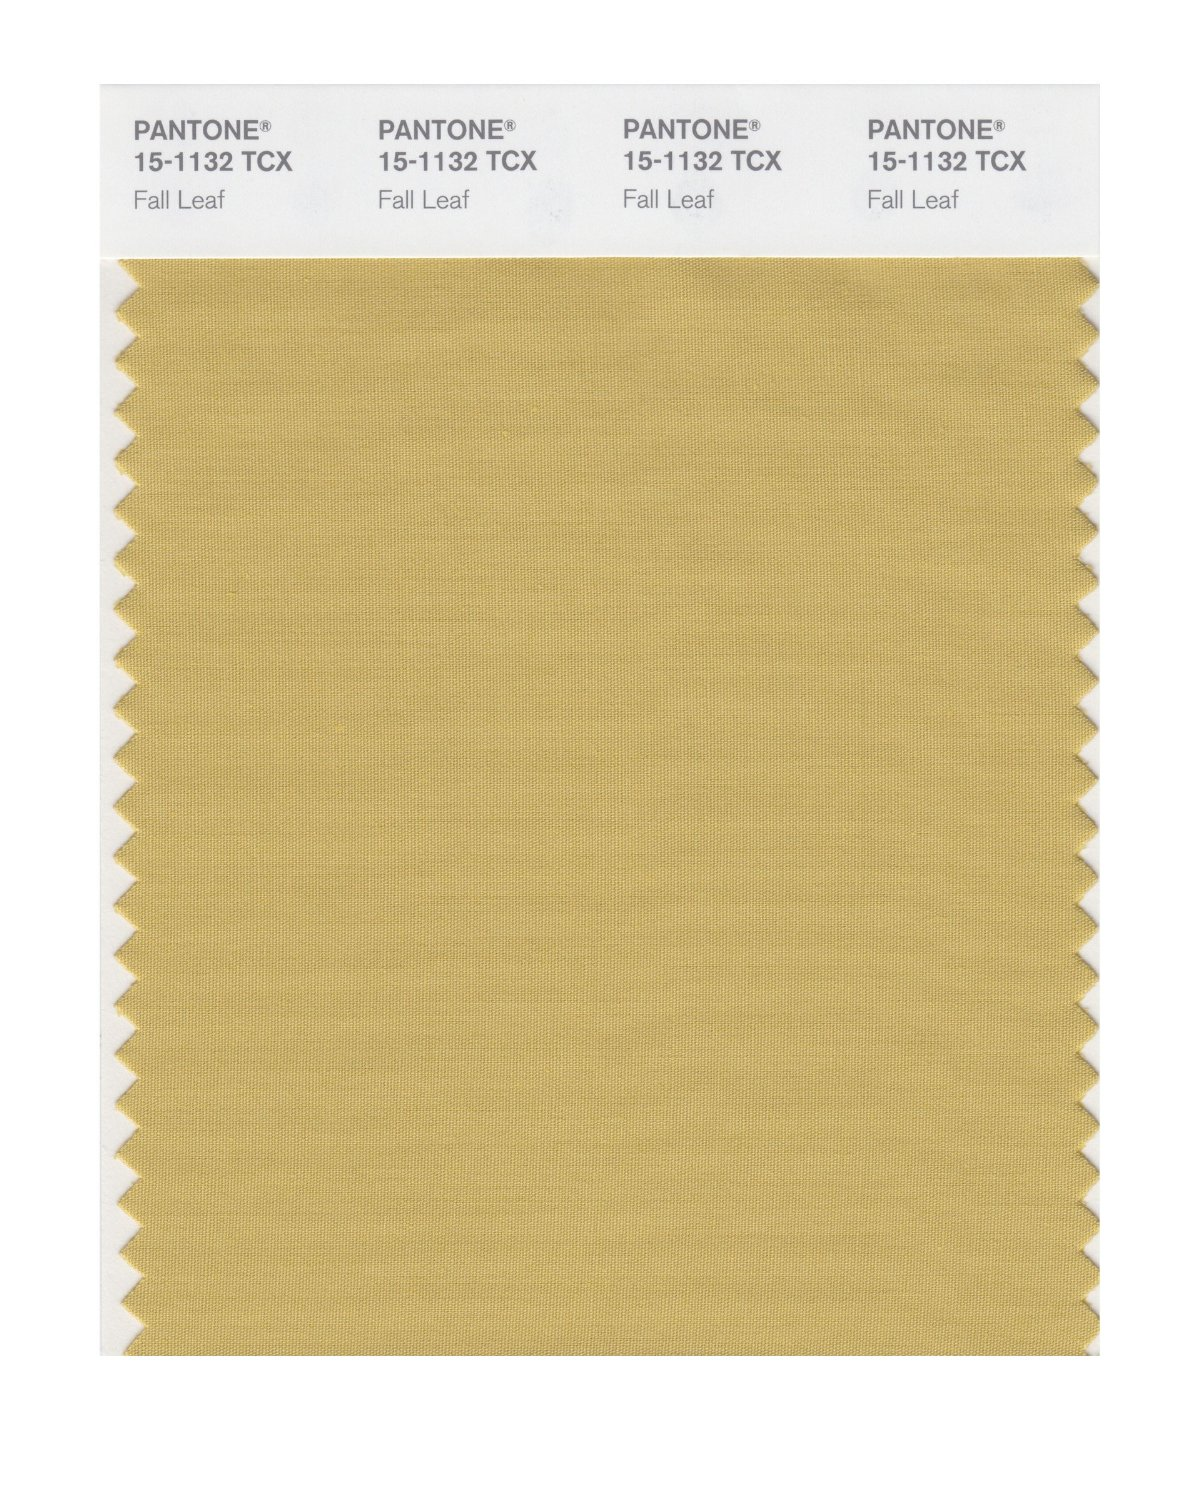 Pantone Smart Swatch 15-1132 Fall Leaf